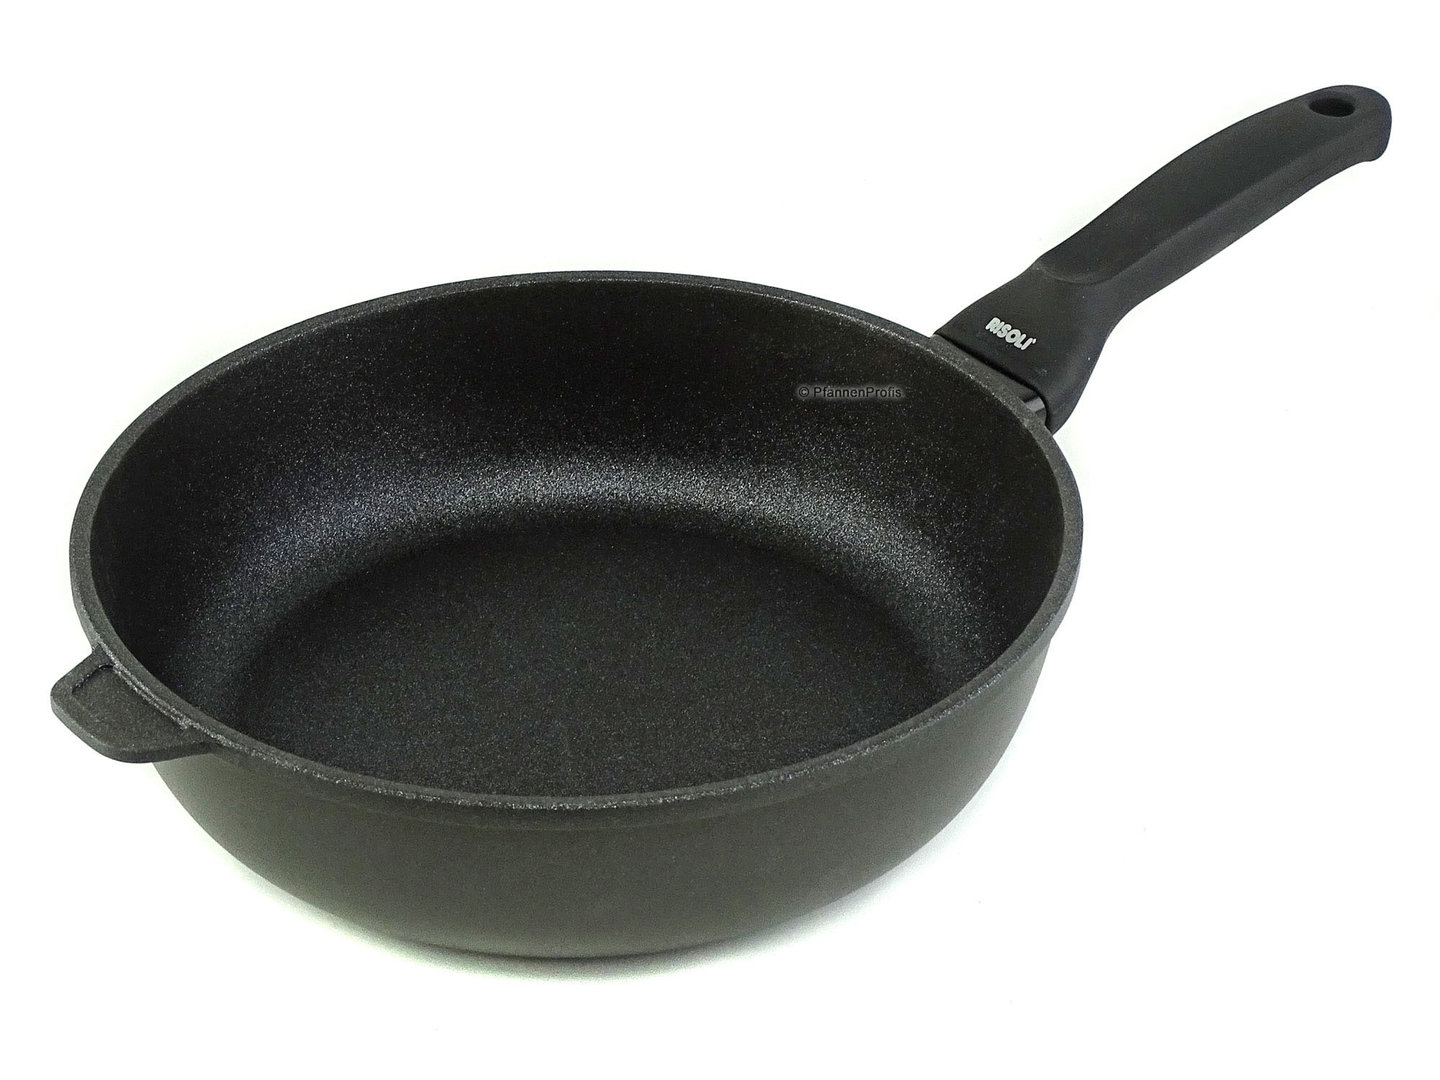 RISOLI cast aluminum deep fry pan BLACKplus induction 28 cm